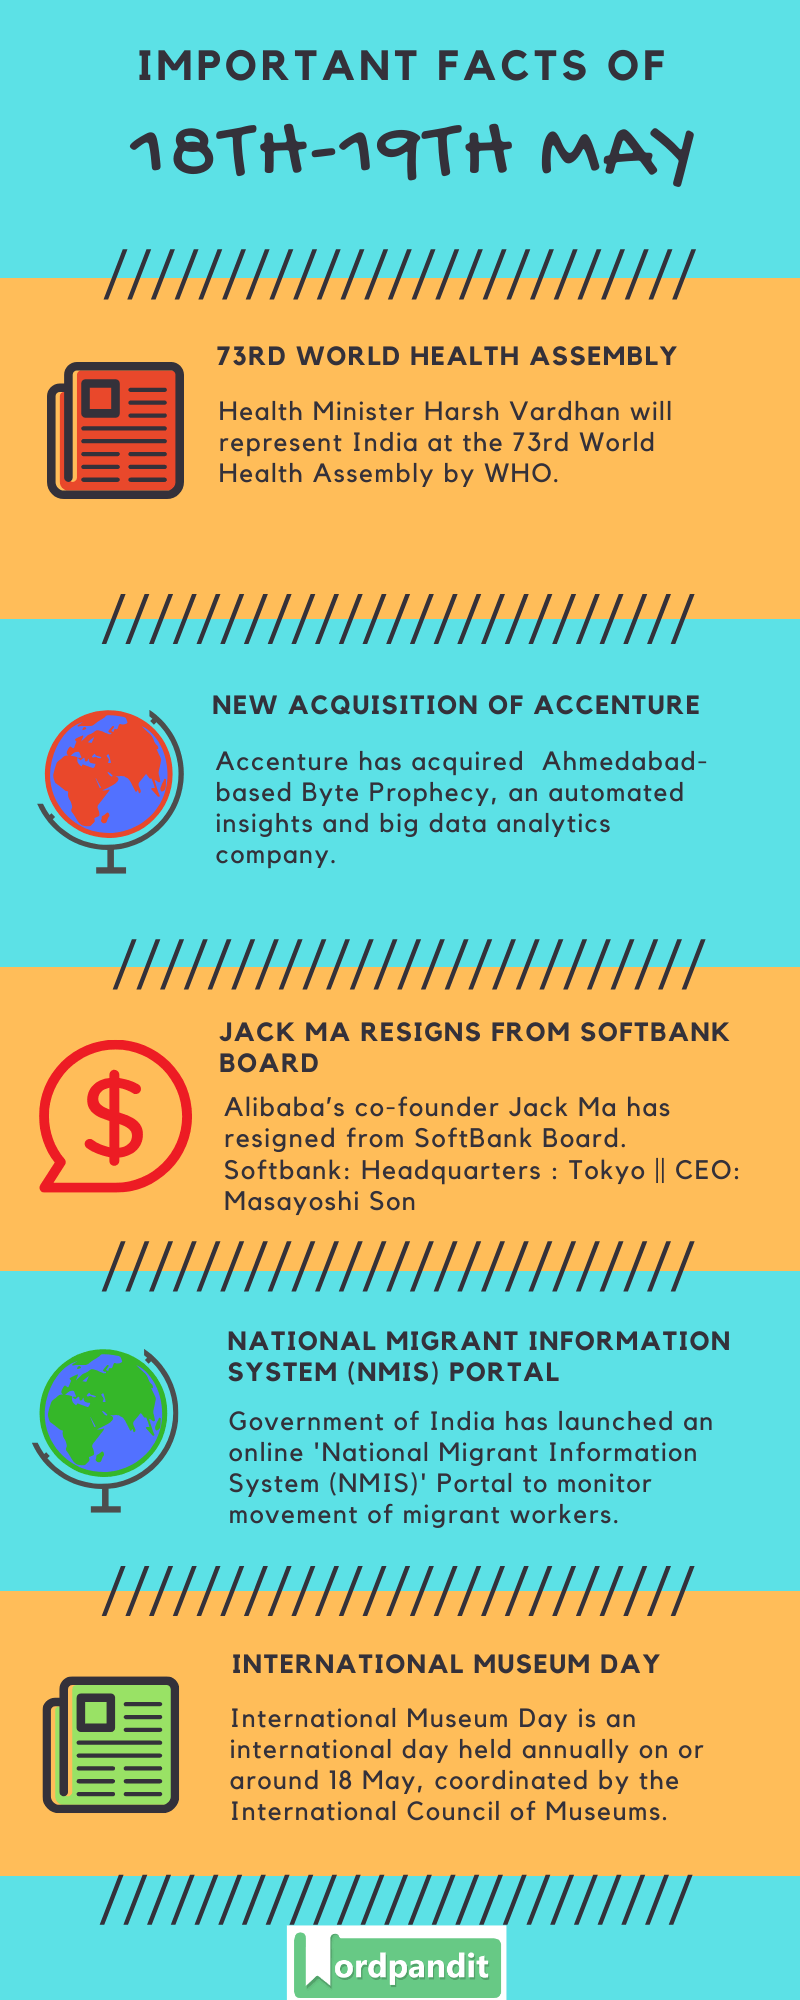 Daily Current Affairs 18th-19th May 2020 Current Affairs Quiz 18th-19th May 2020 Current Affairs Infographic